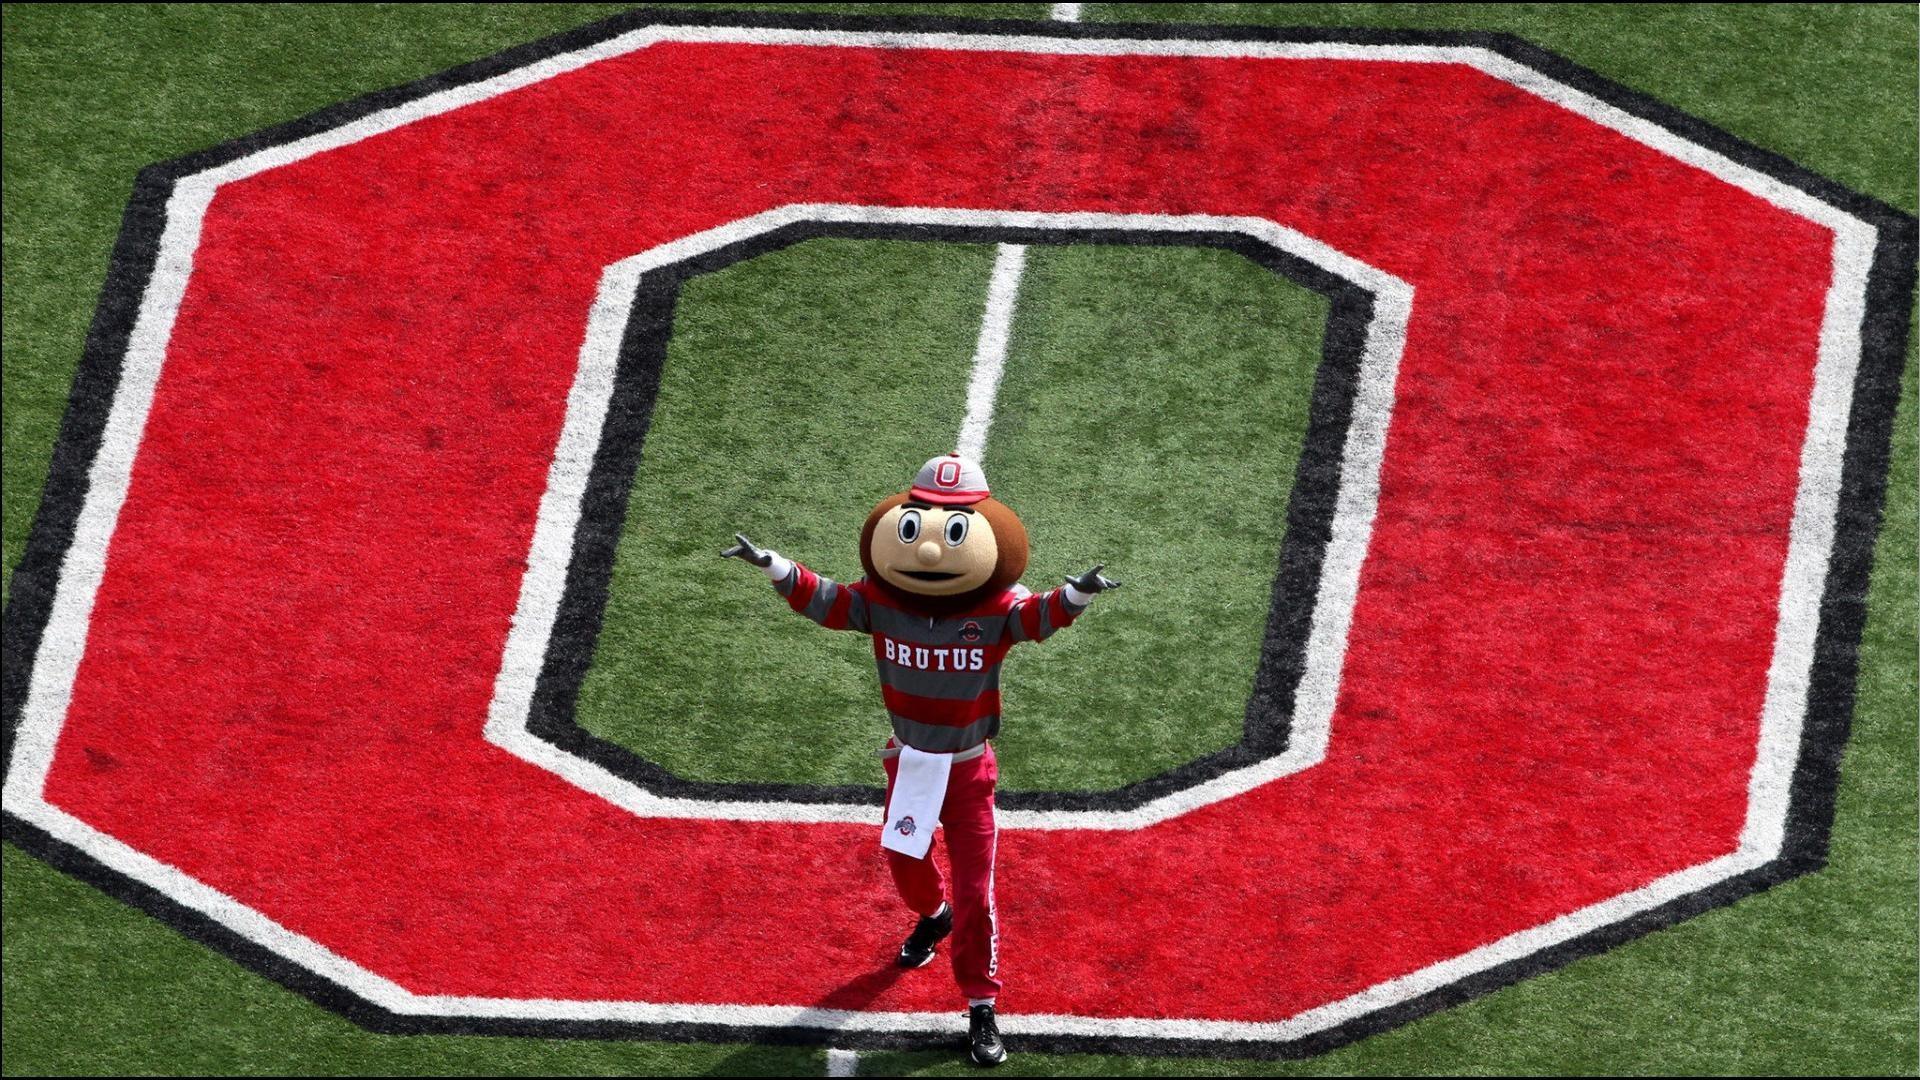 … ohio state football wallpapers wallpaper cave …